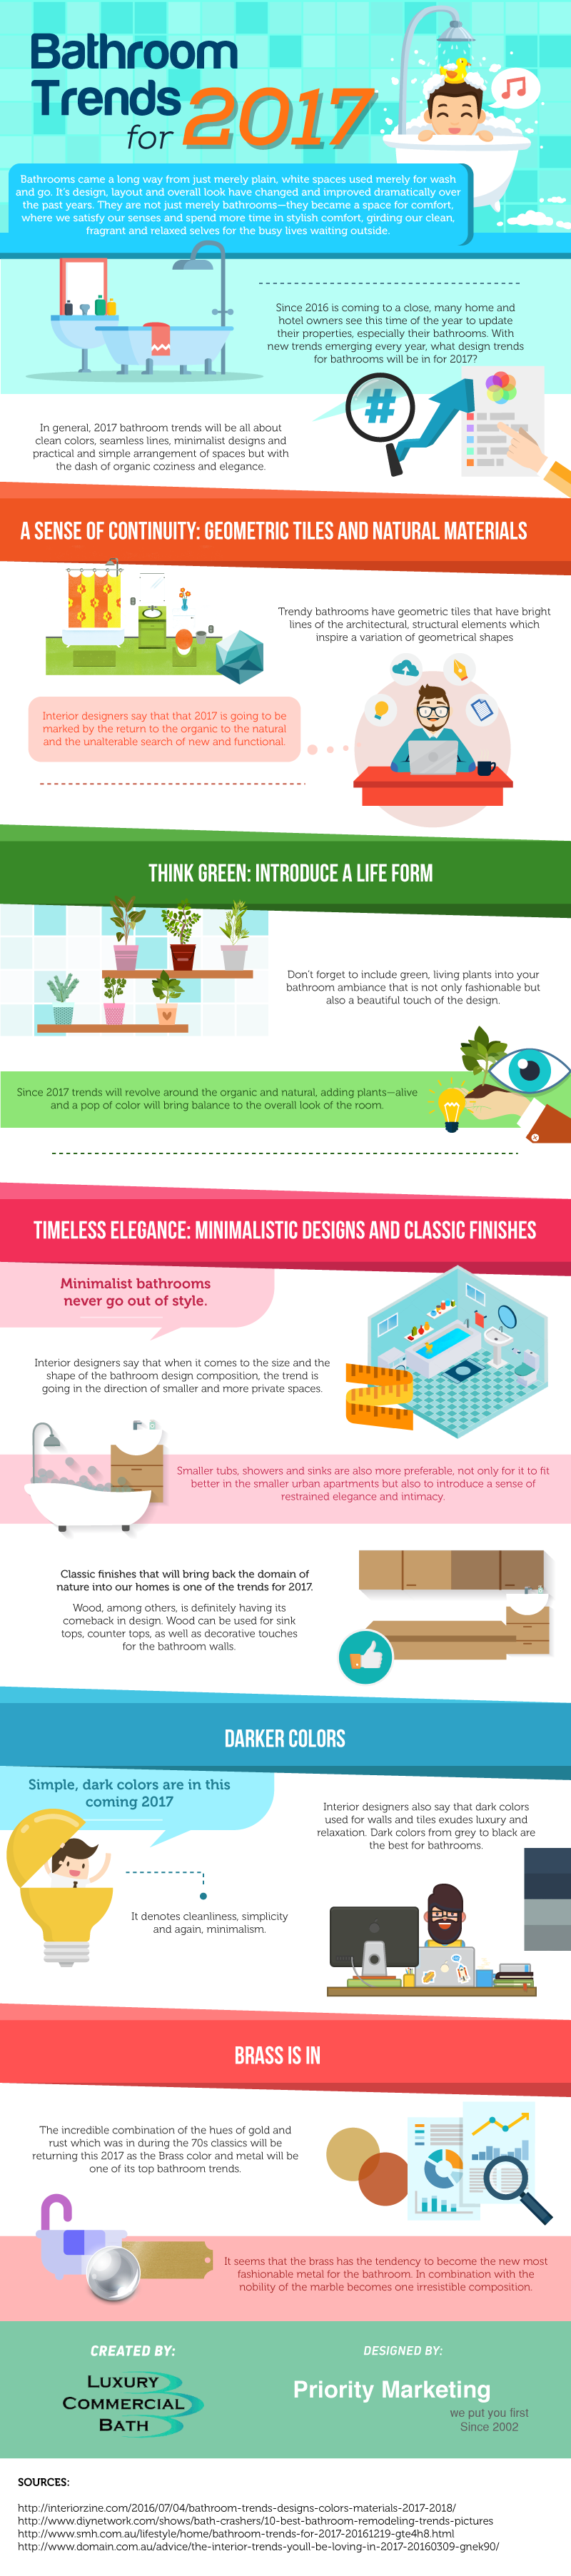 Bathroom Trends For 2017 – Infographic